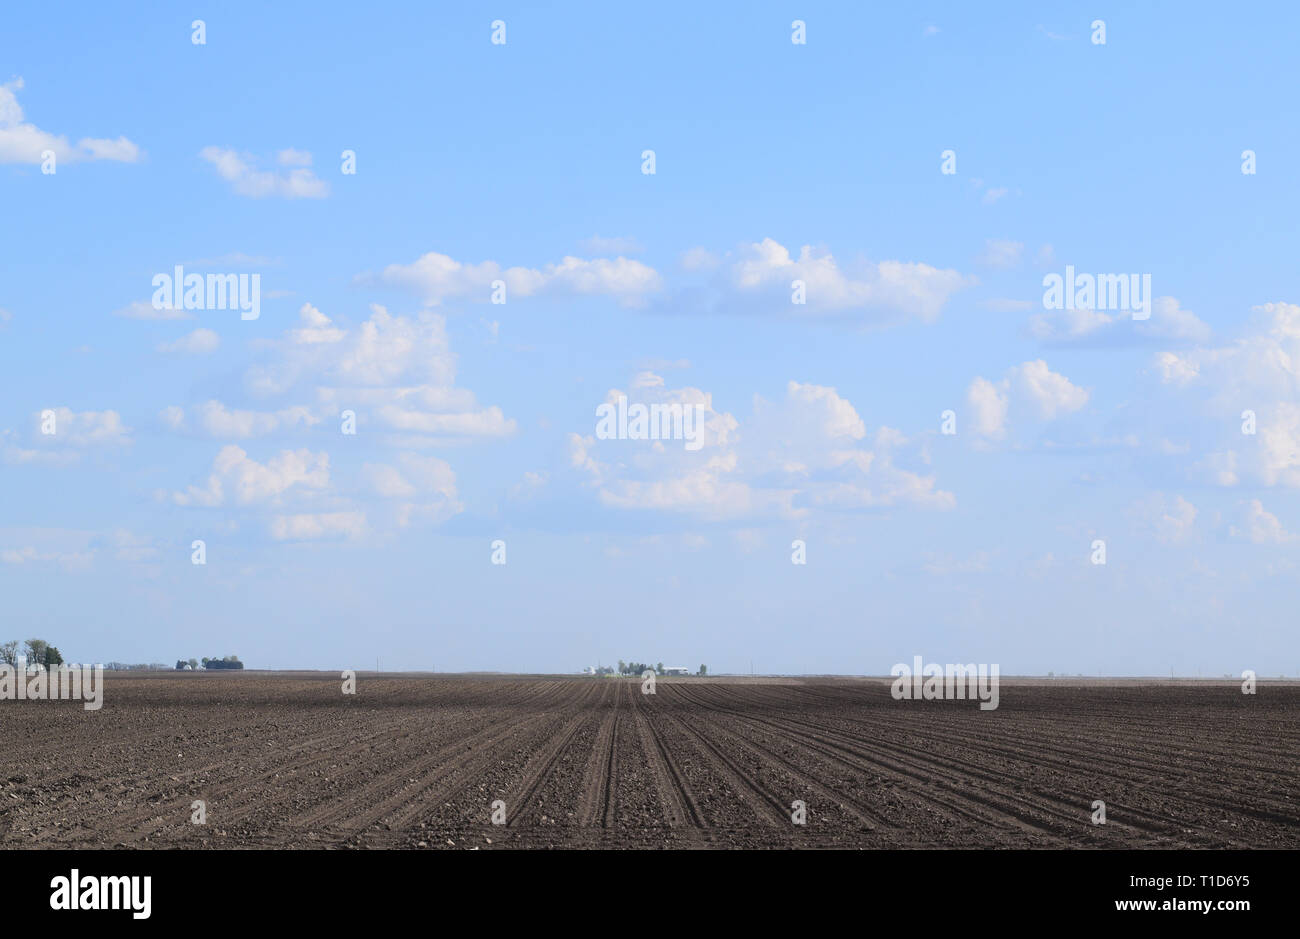 Large clouds in blue sky over empty farmland in spring time in East Central Illinois farm country - Stock Image